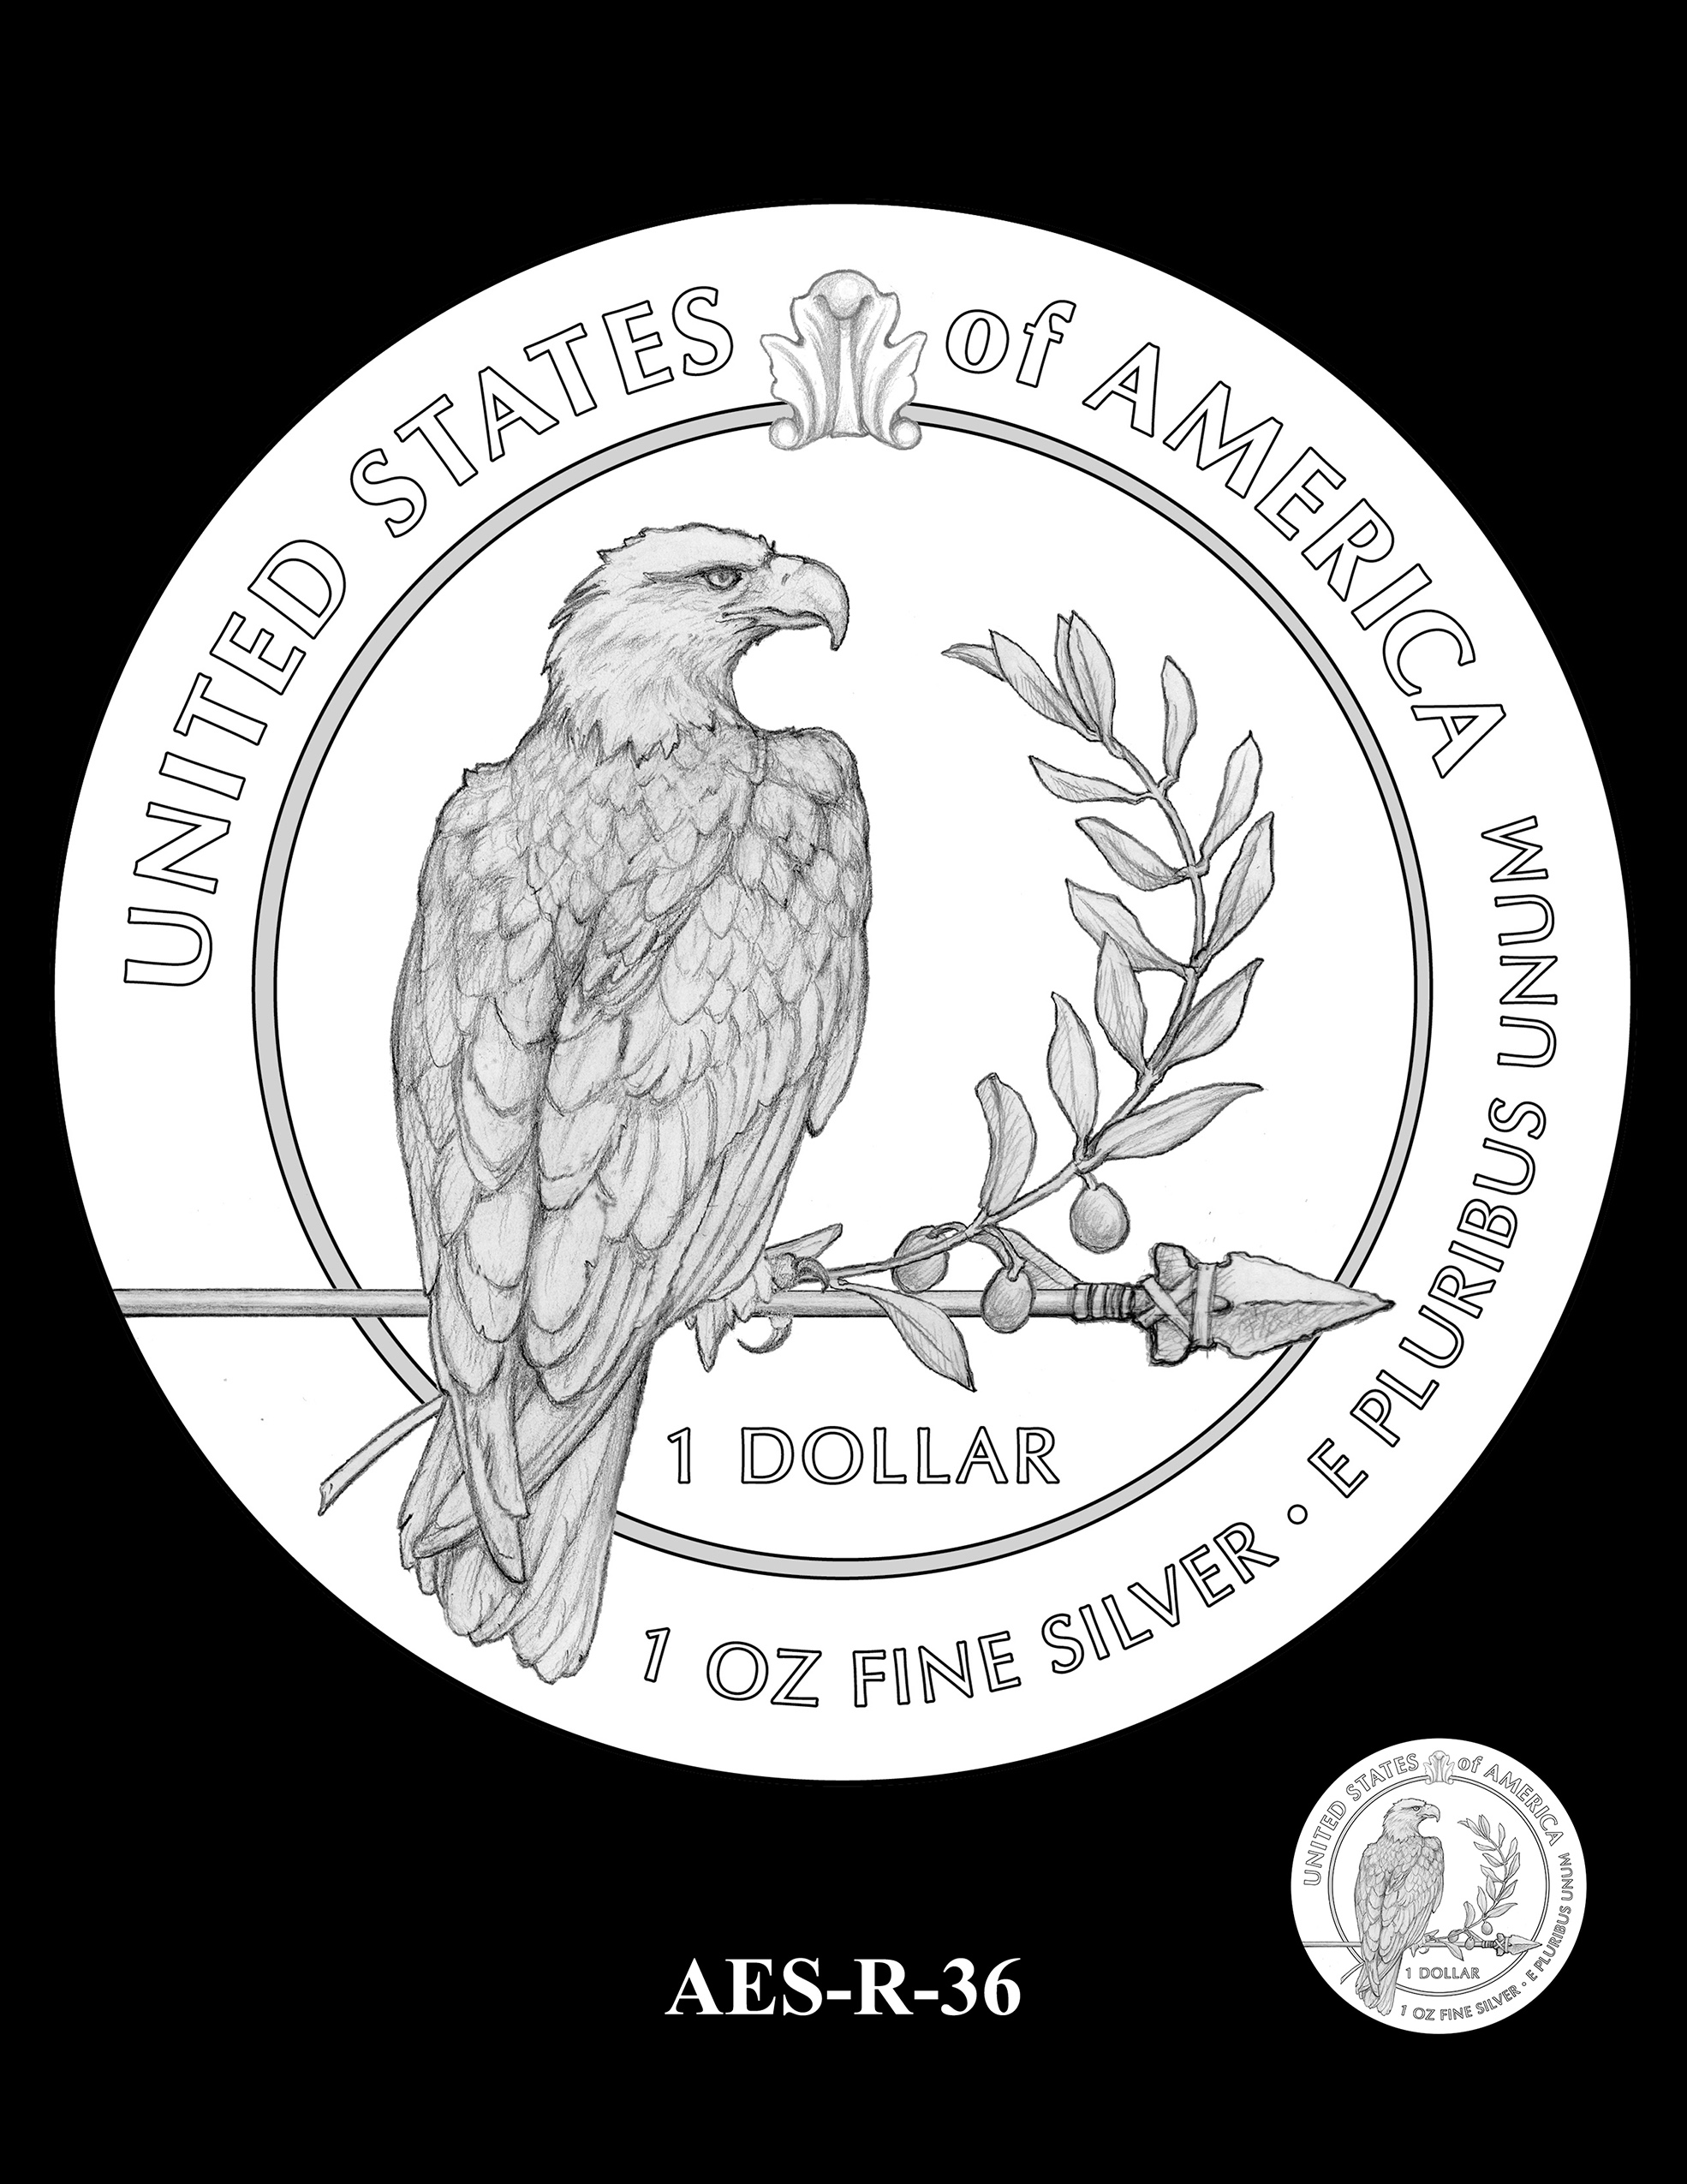 AES-R-36 -- American Eagle Proof and Bullion Silver Coin - Reverse